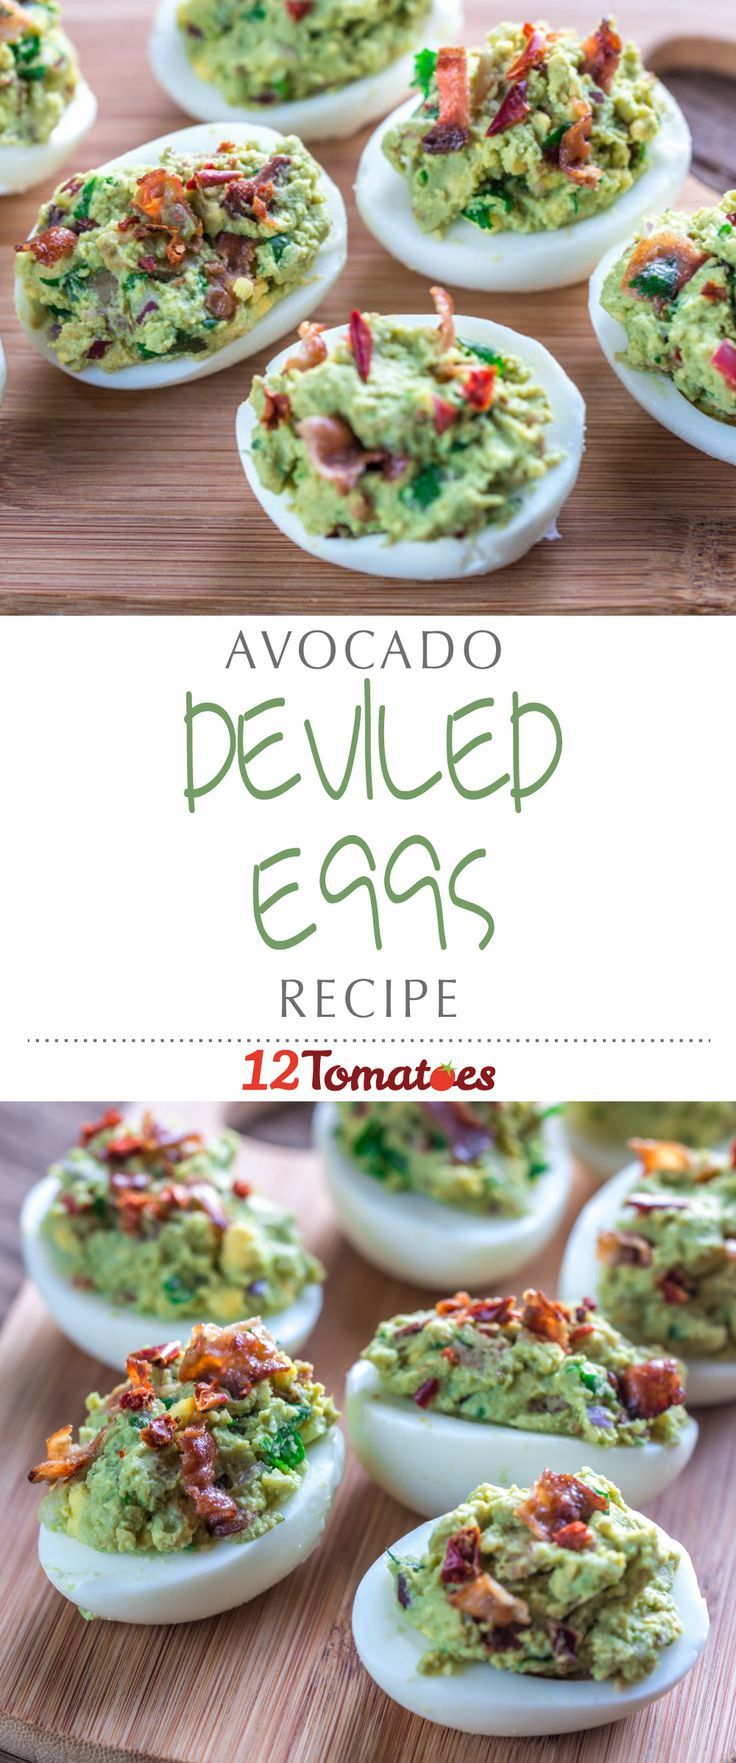 Avocado Deviled Eggs   We love the traditional version, but the rich saltiness of the bacon, creaminess of the avocado and spiciness of the jalapeño peppers combine to create a dish that's even better than the original!